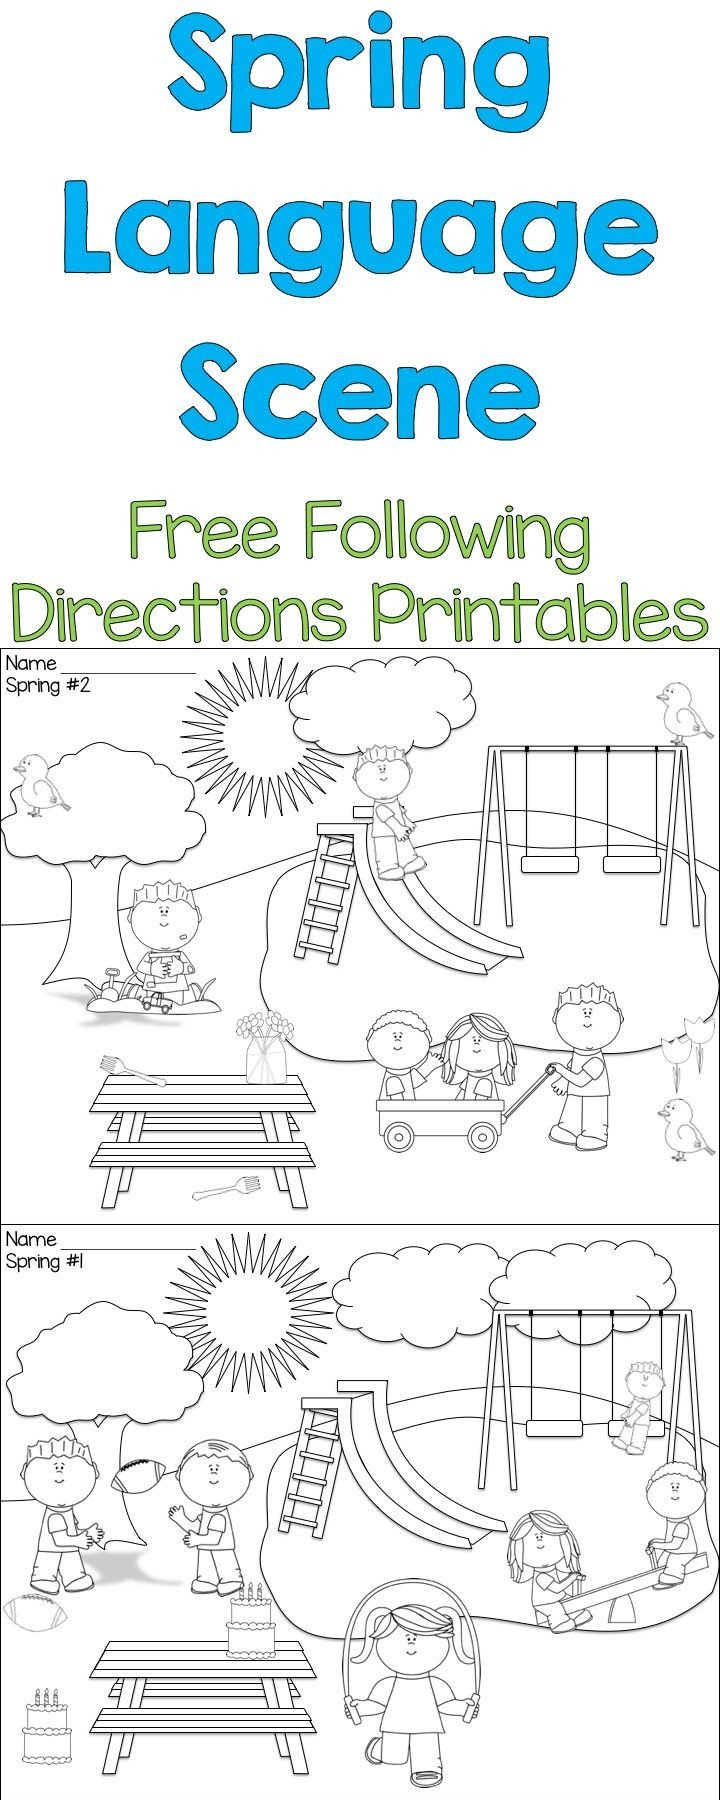 Following Directions Coloring Worksheet Spring Language Scenes with Images